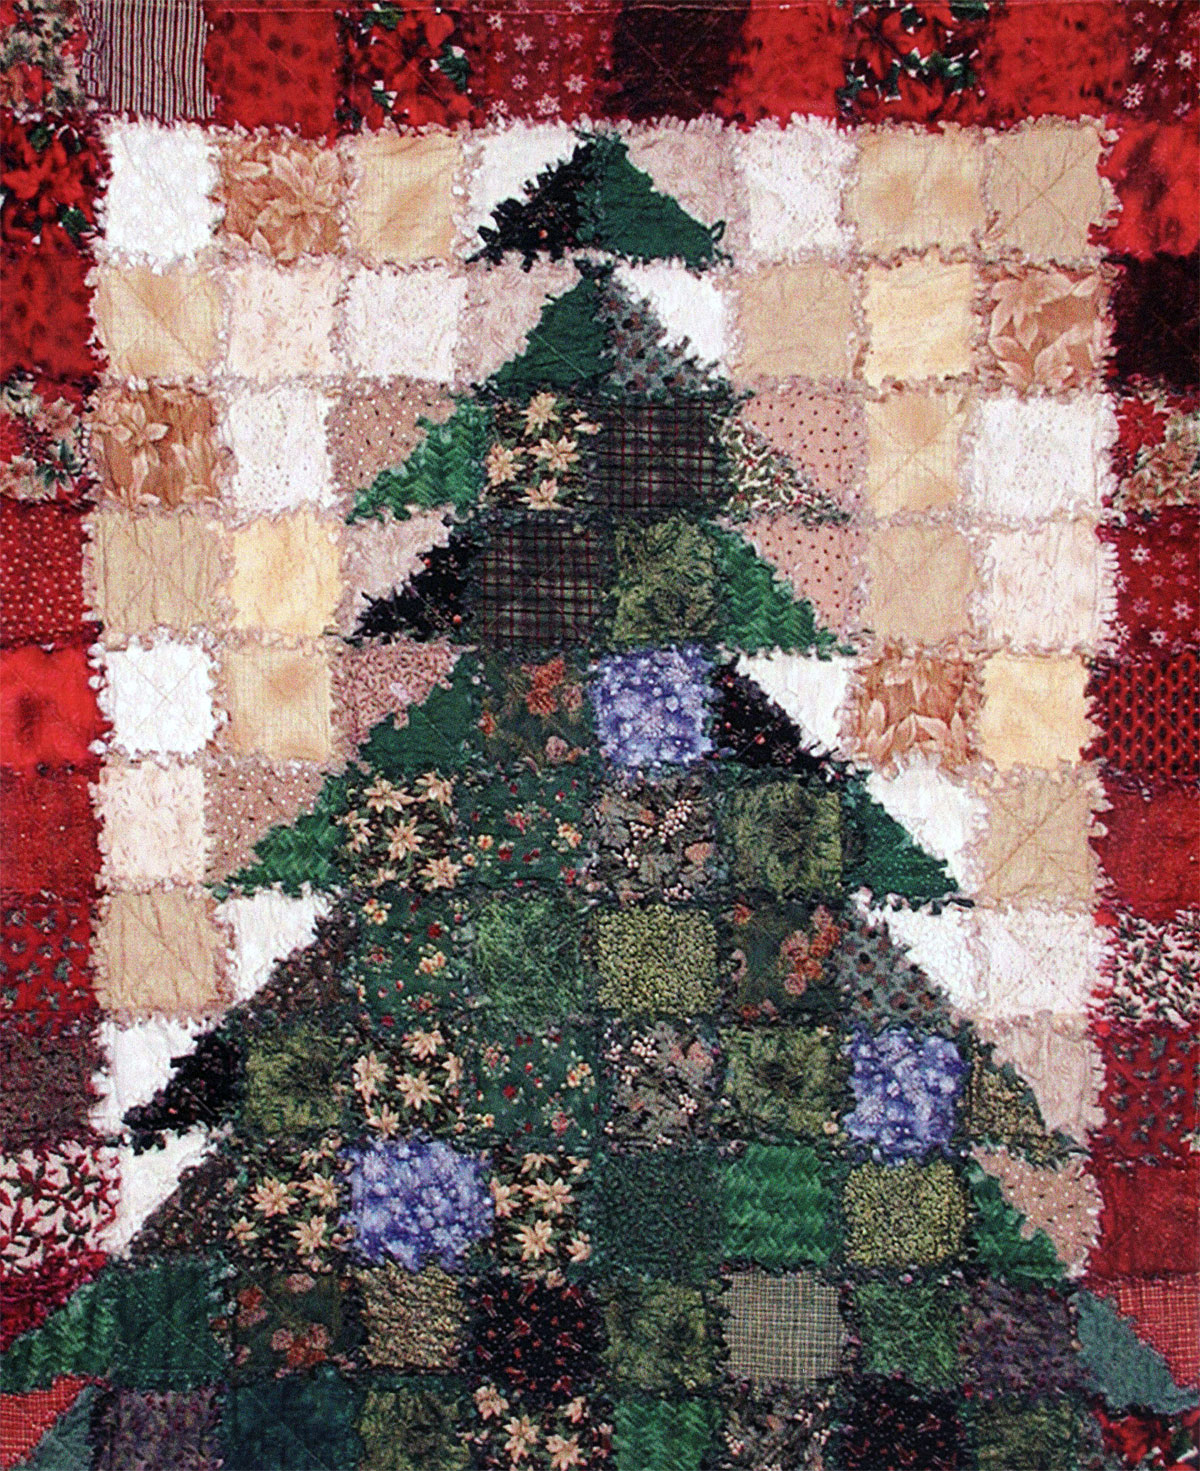 o-christmas-tree-sewing-pattern-Saginaw-st-quilts-1